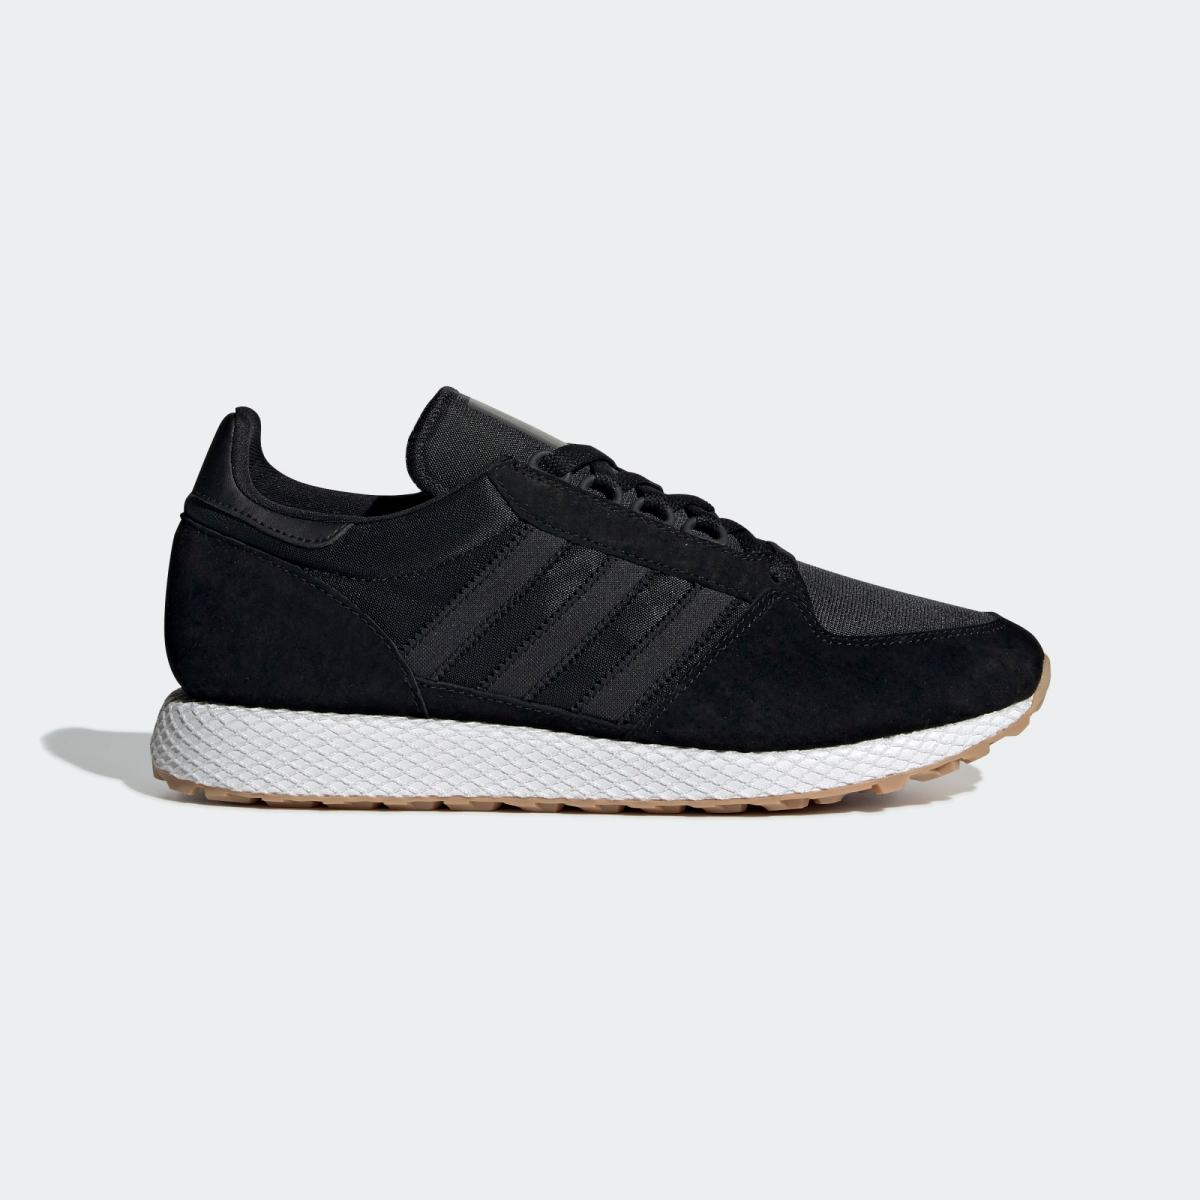 Forest_Grove_Shoes_Black_CG5673_01_standard